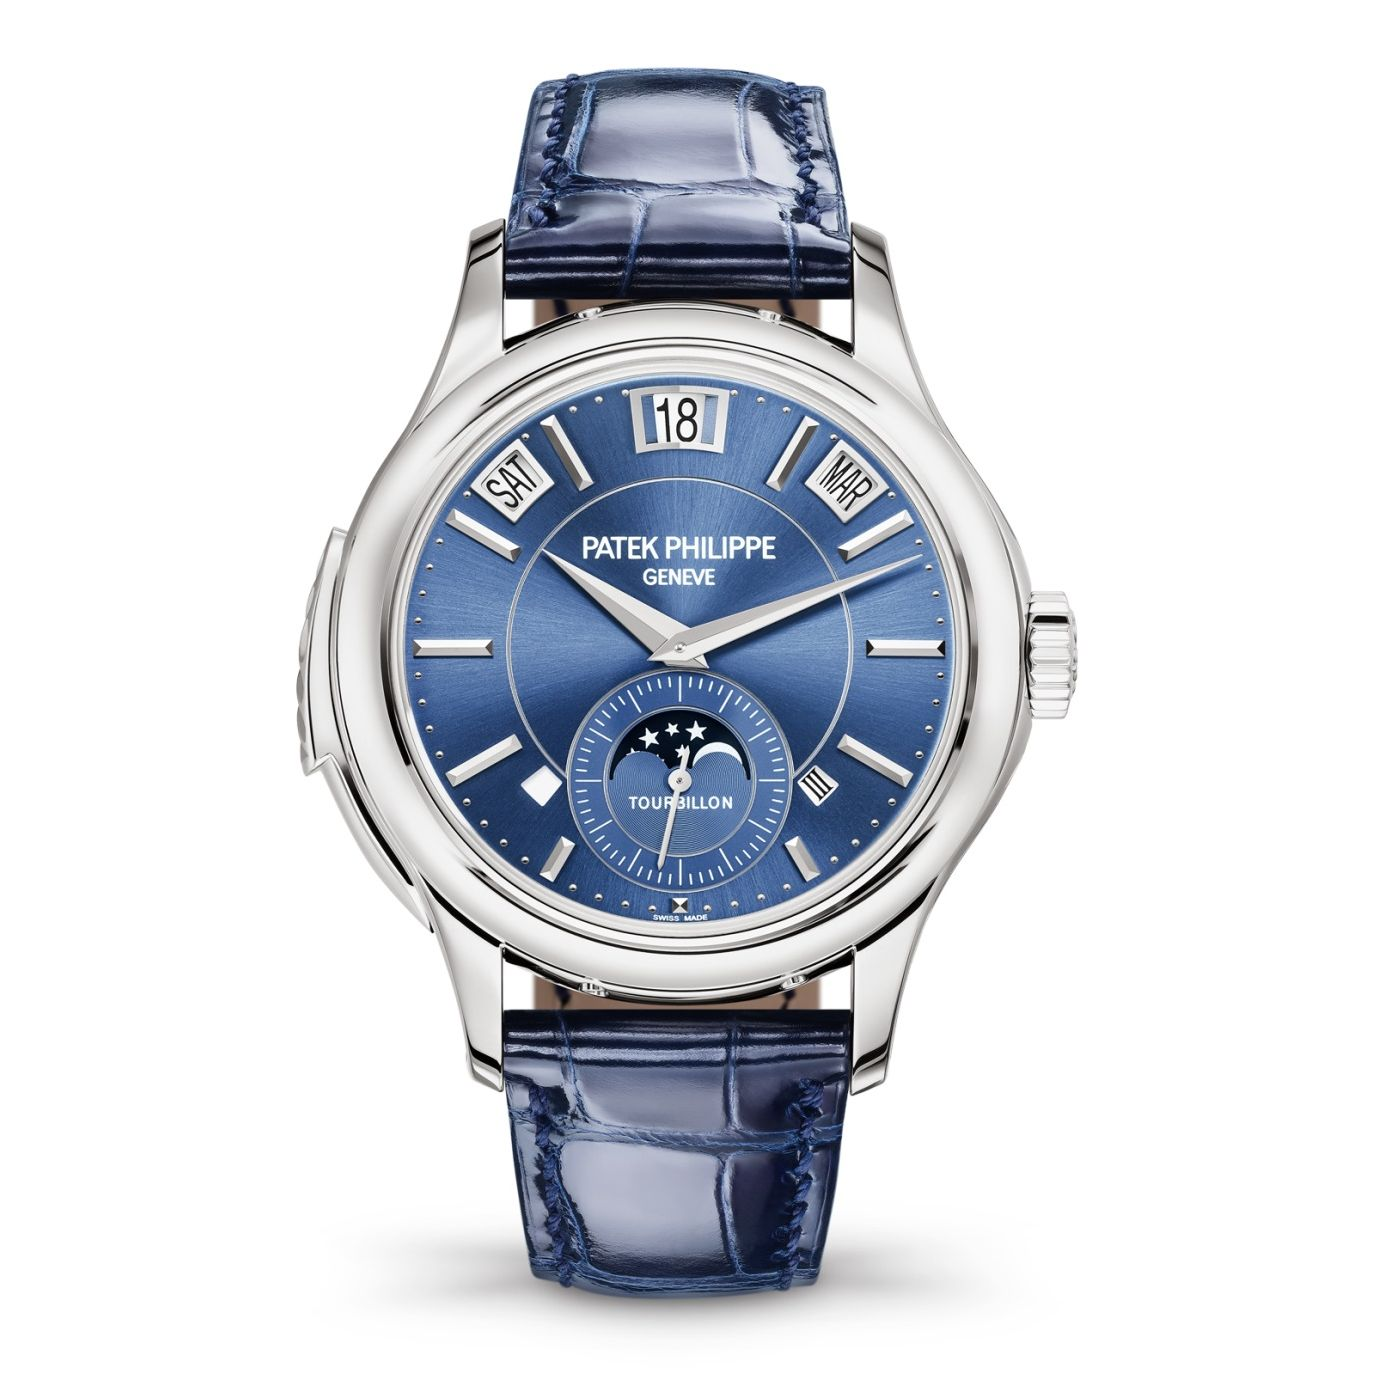 Patek Philippe Tourbillon Minute Repeater Perpetual Calendar hite Gold / Blue 5207G-001